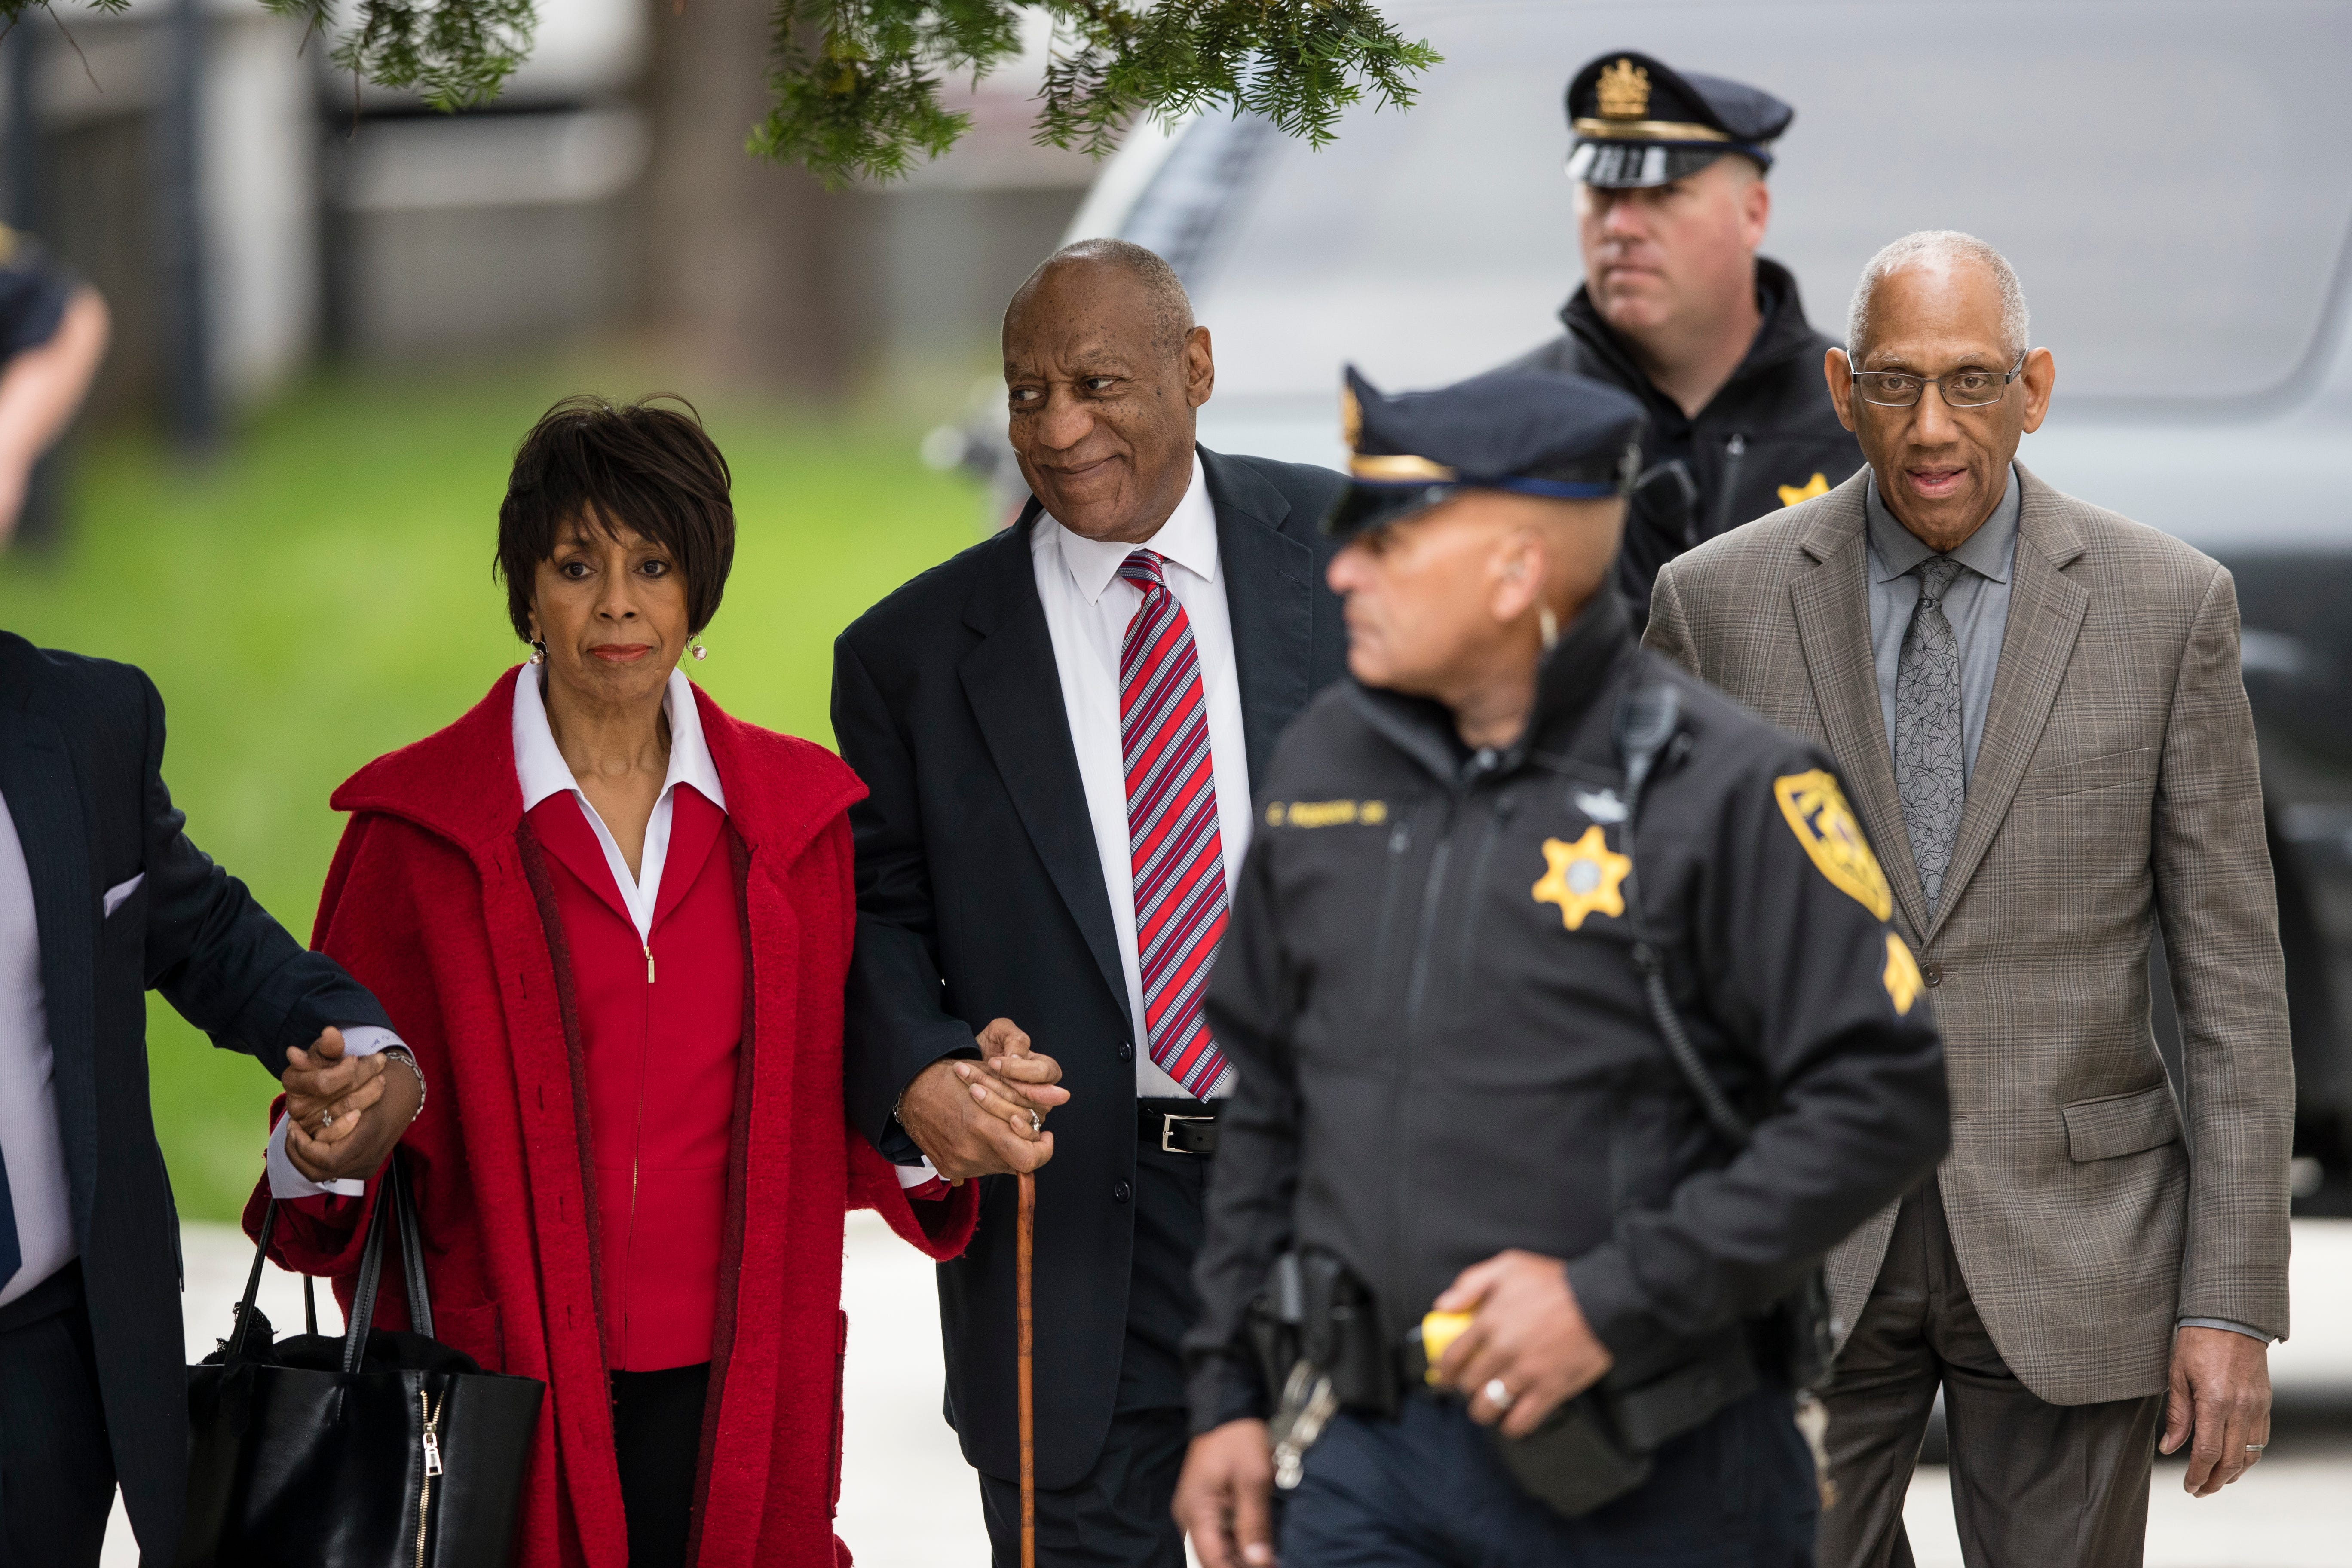 636324284013341352-AP-Bill-Cosby-004 Bill Cosby trial Day 3: Accuser Andrea Constand to be grilled further